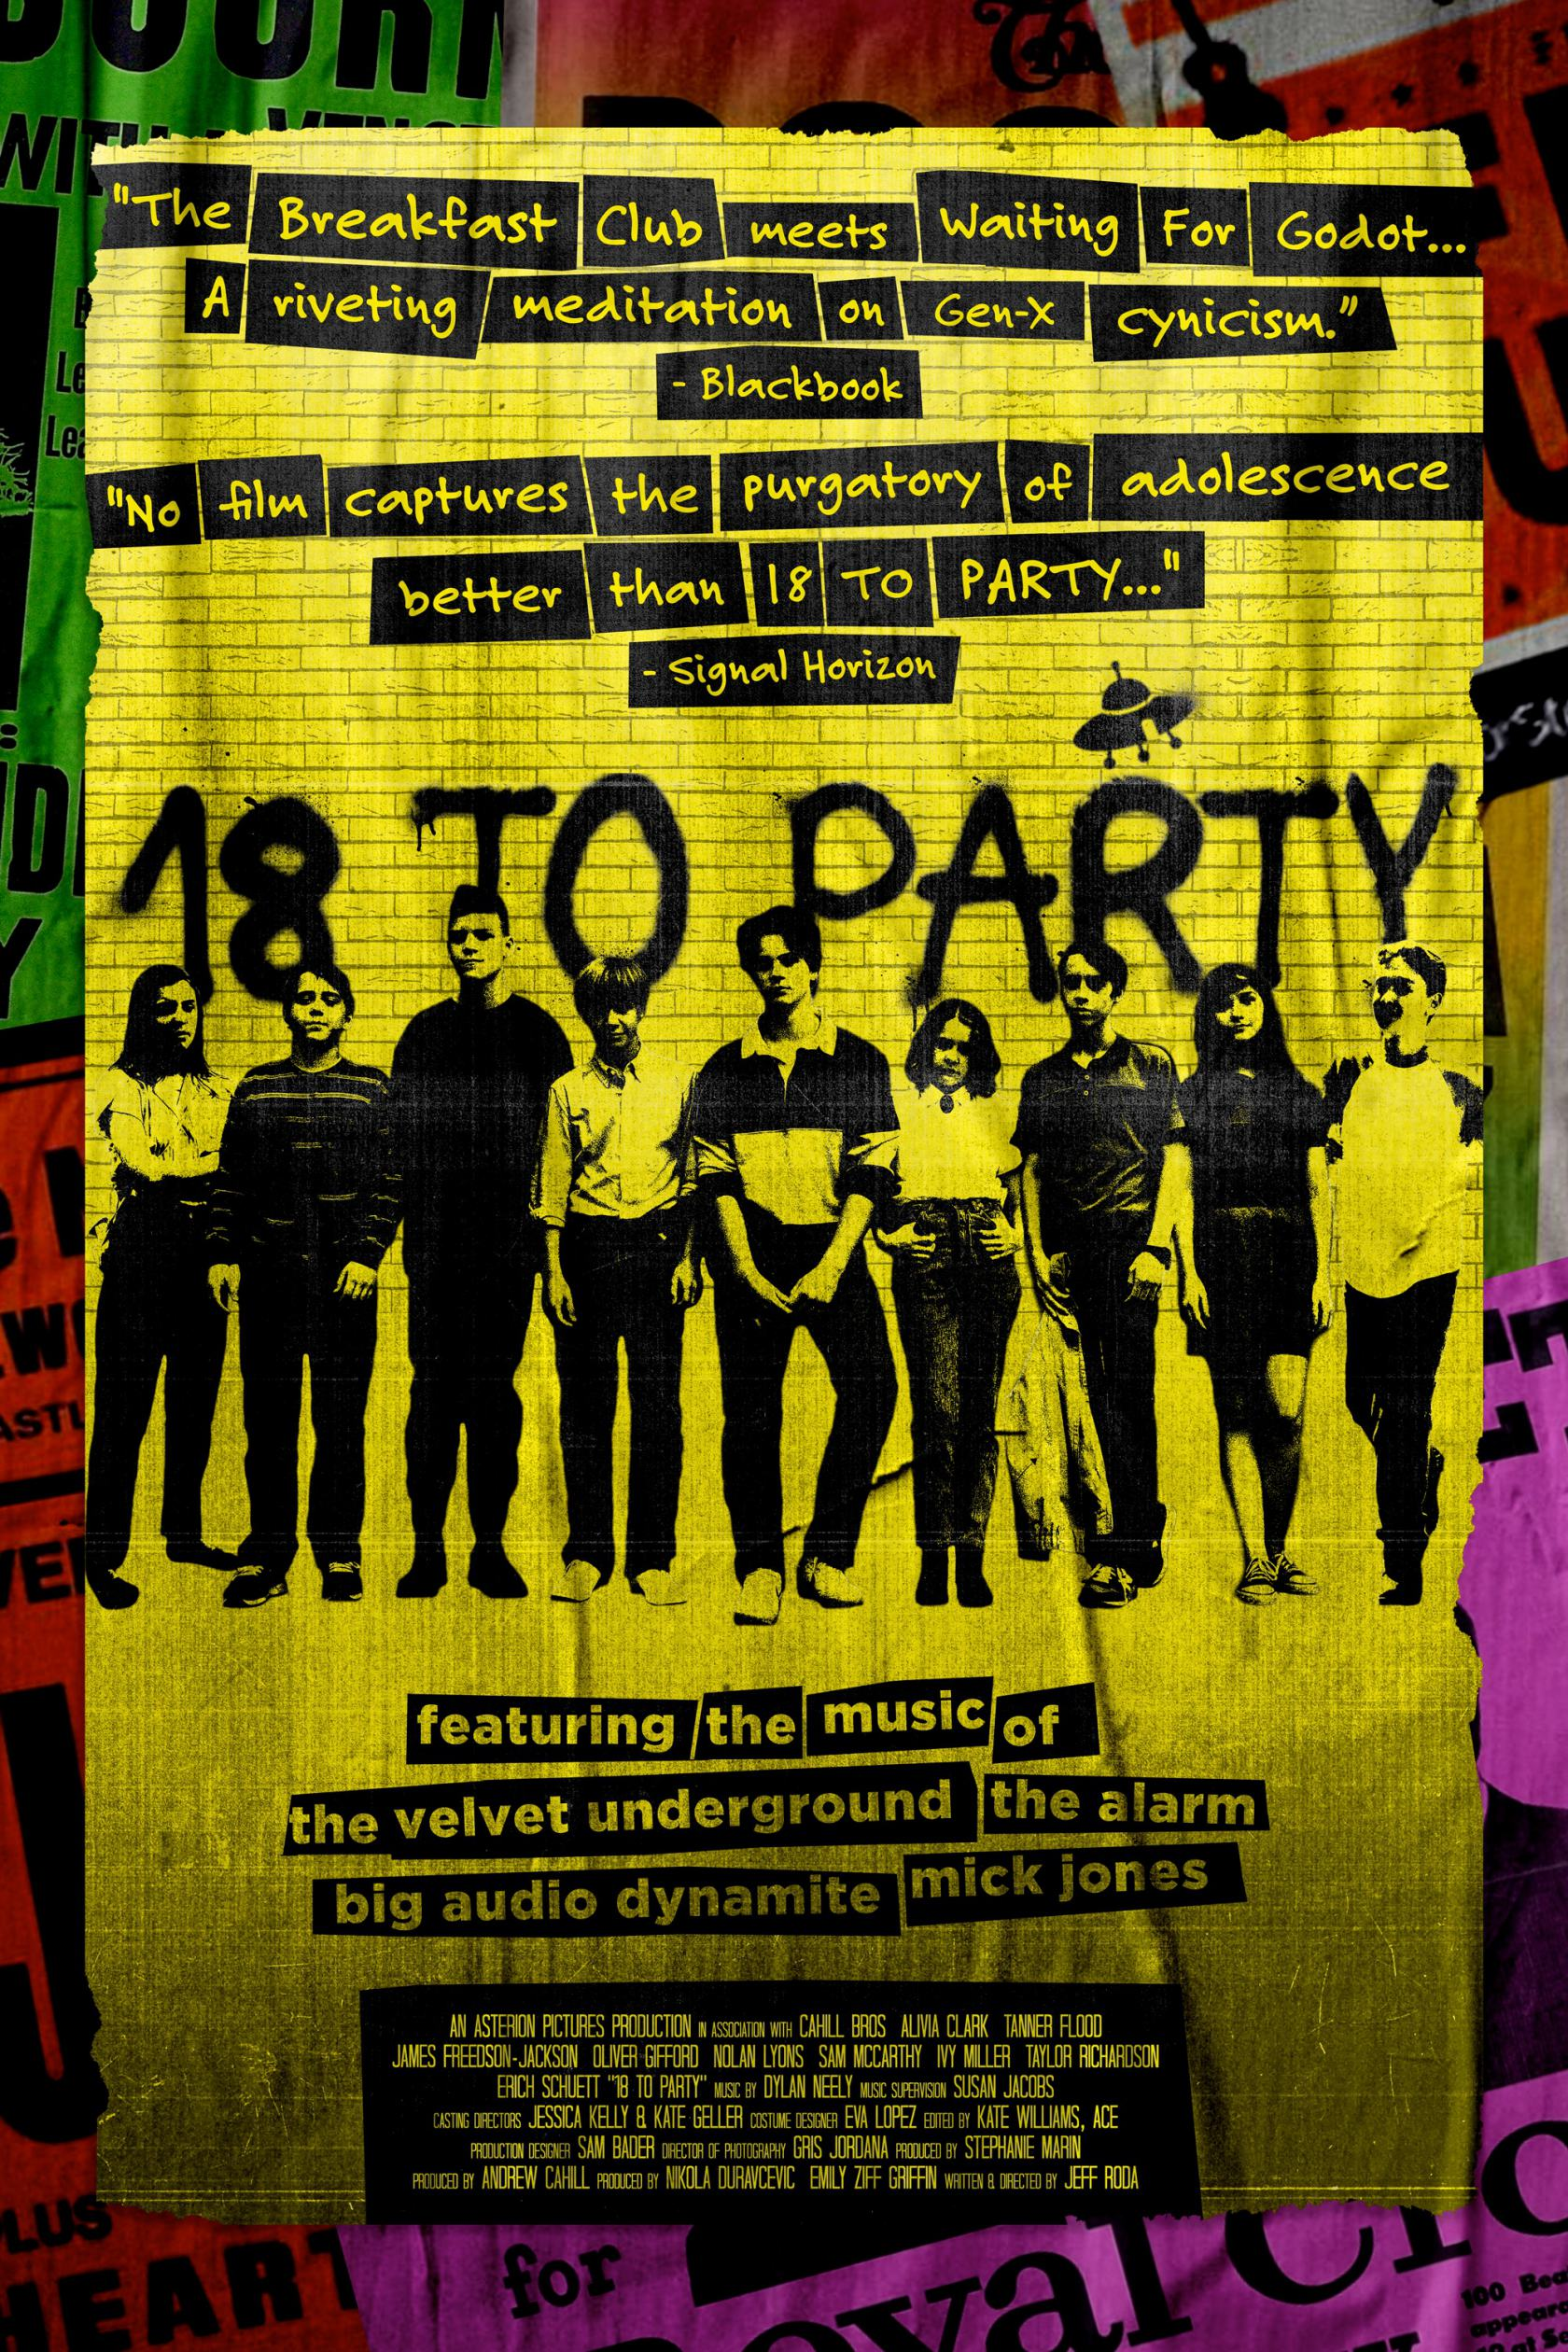 18 to Party Poster #1